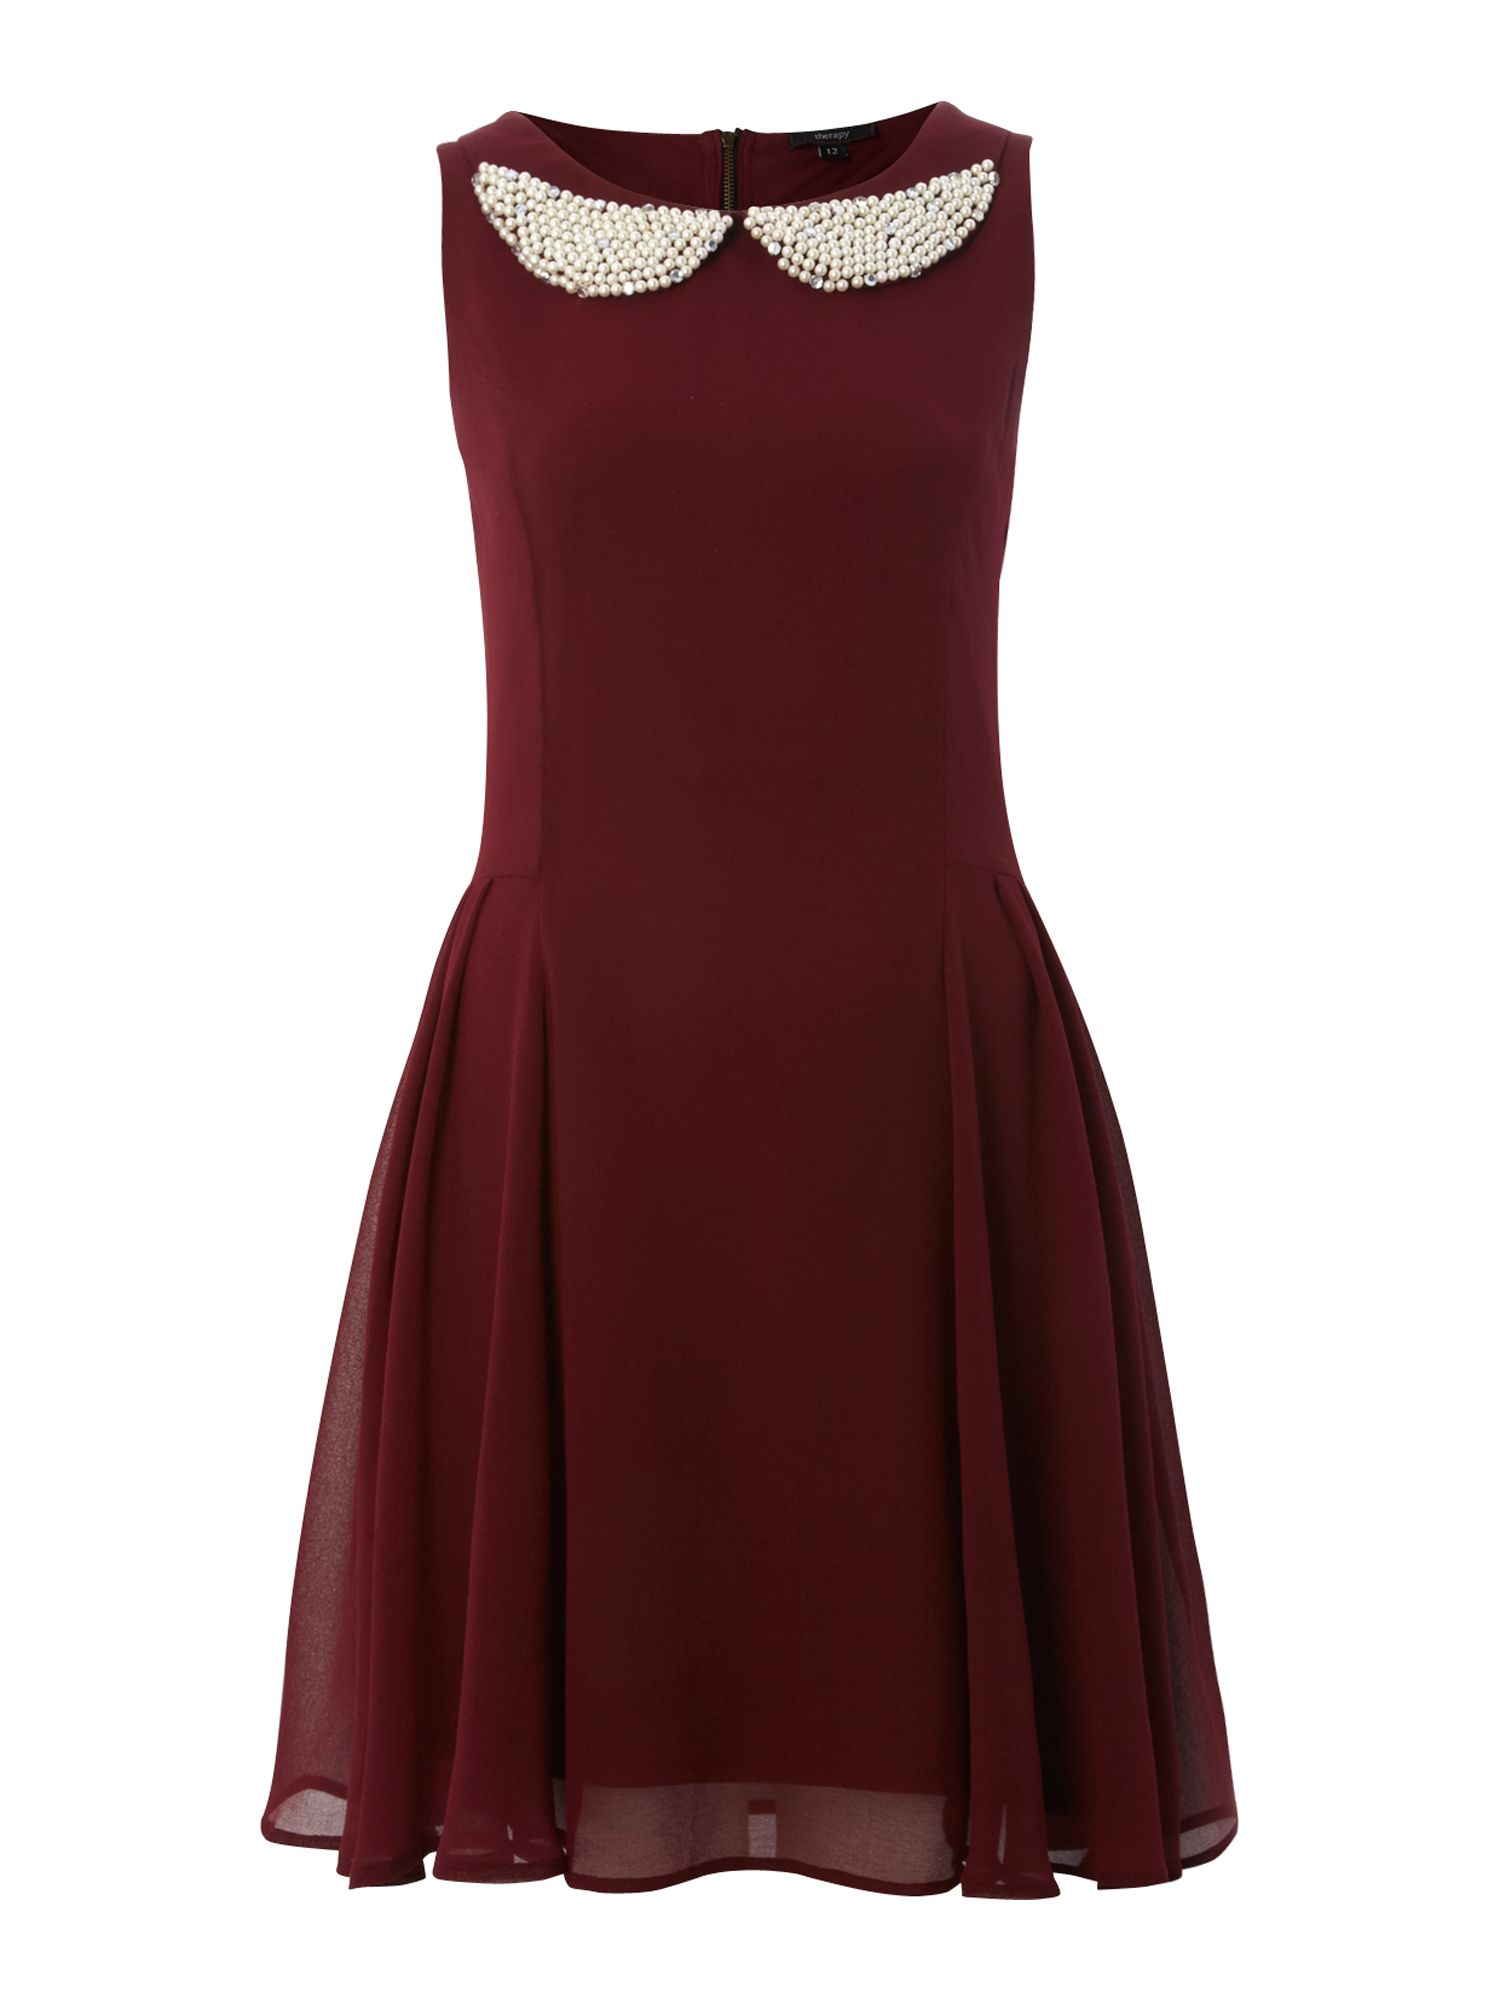 Party dress with pearls on a round collar